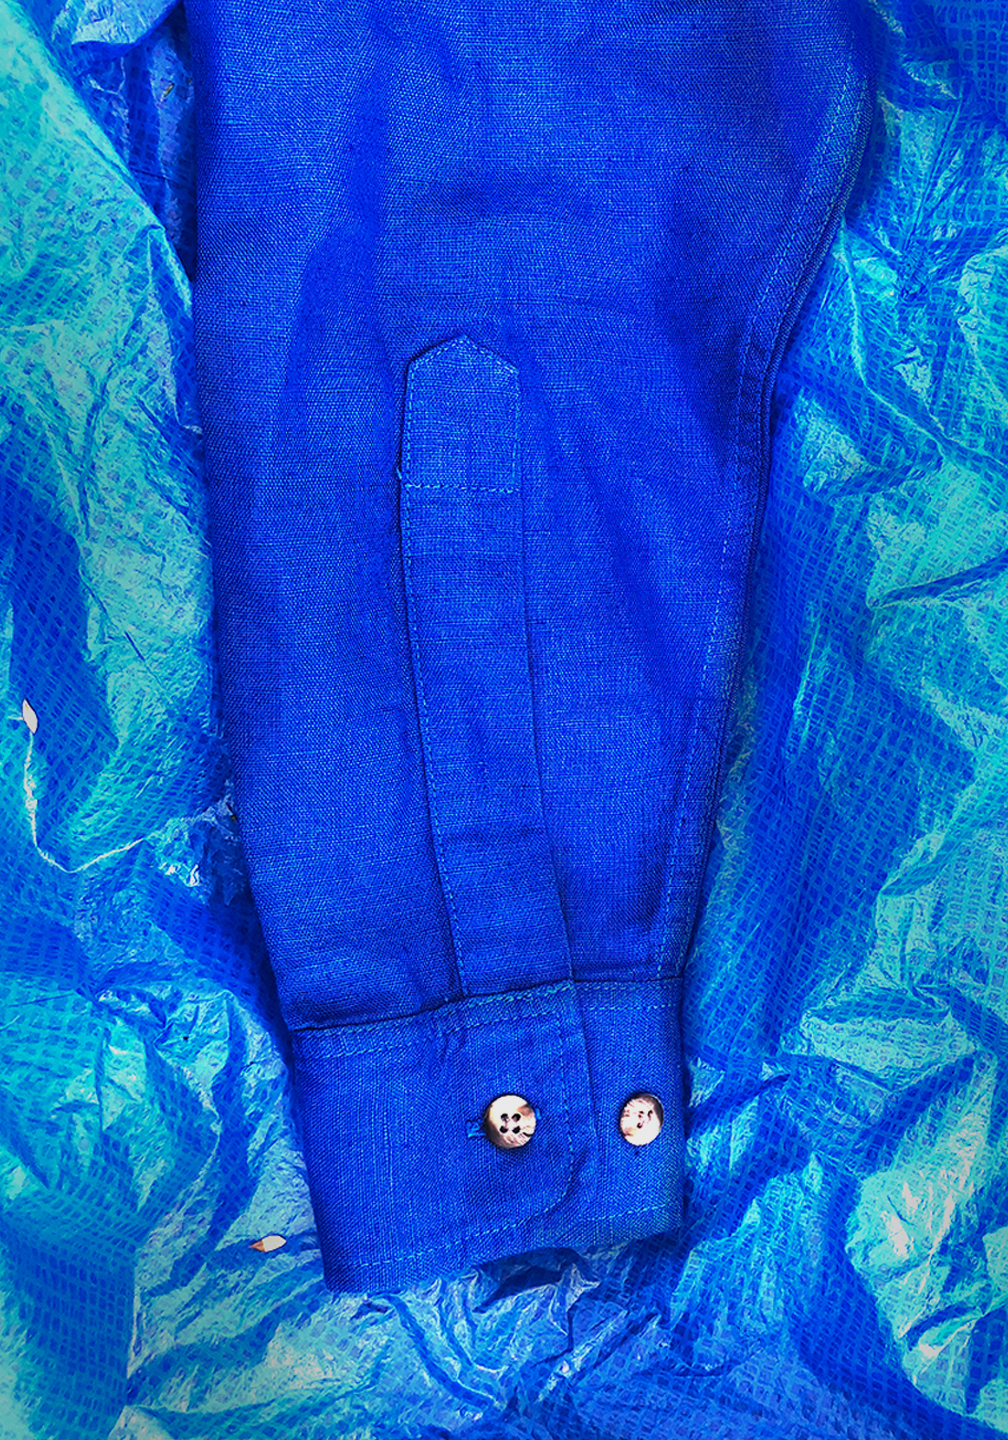 Prakash_ButtonUp_Blue_Sleeve_Rotator_3